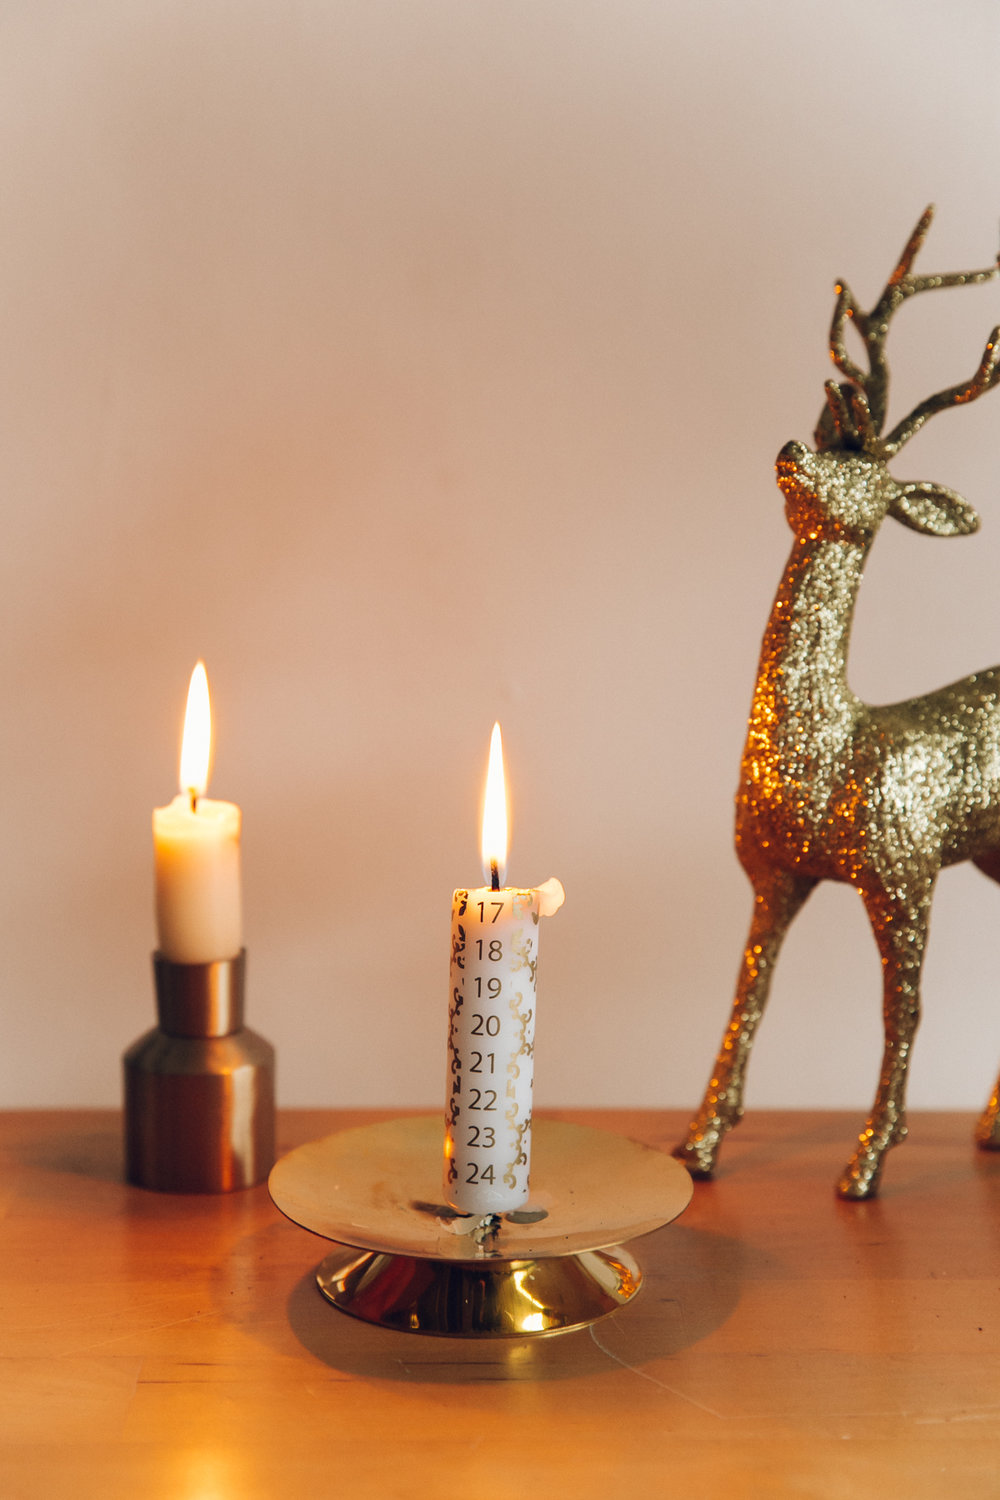 Advent candle.